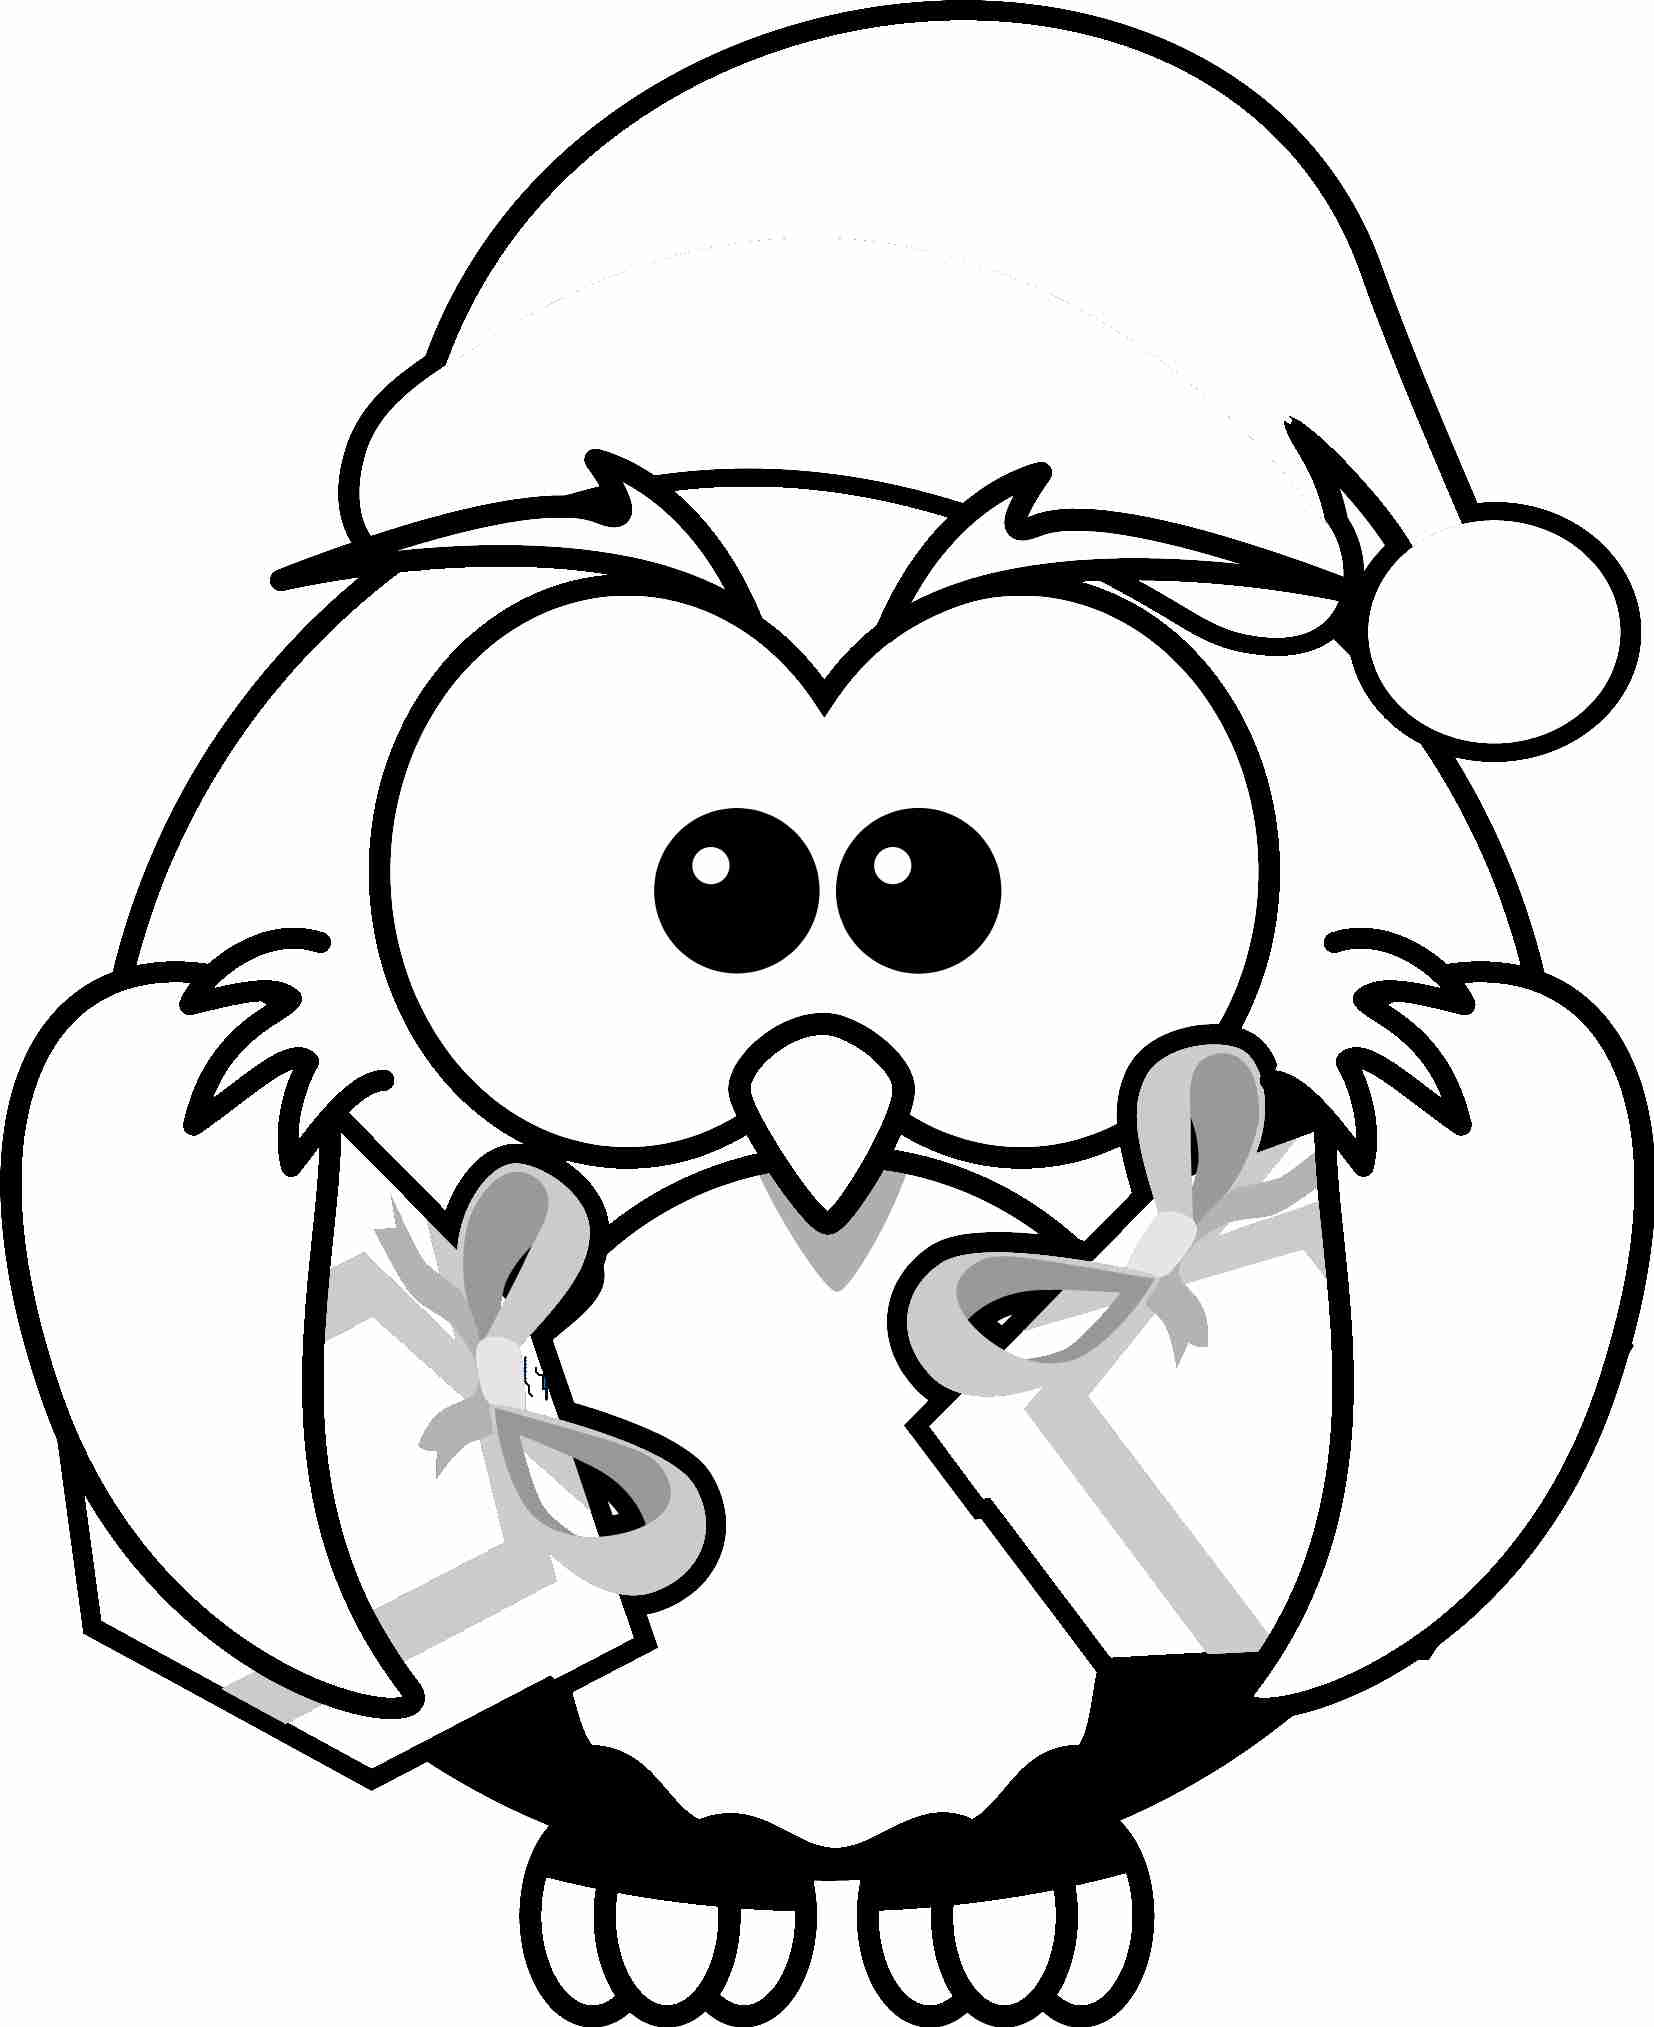 cat coloring page christmas penguin - Xmas Coloring Pages